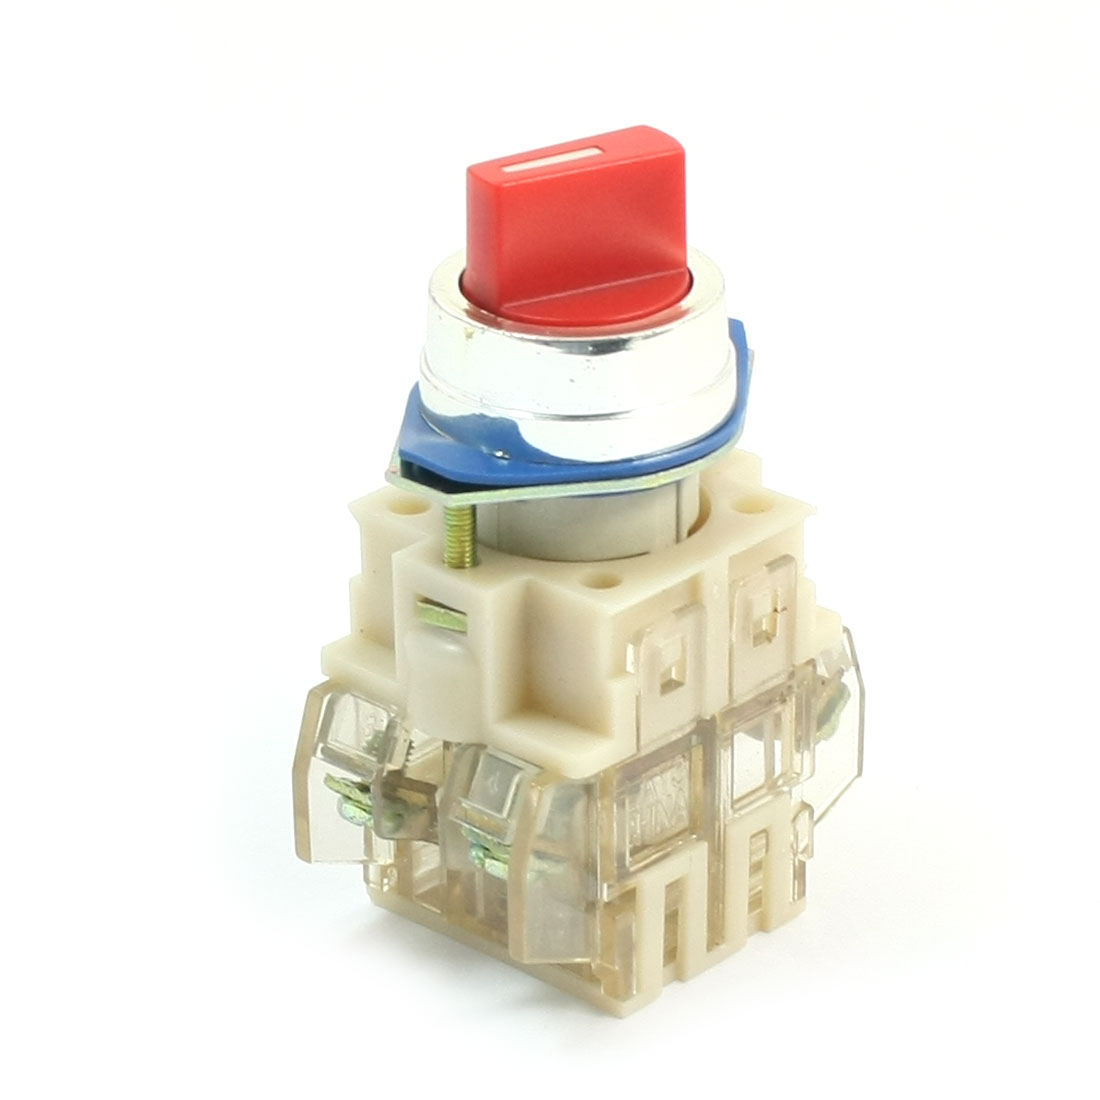 660V 10A 4-Terminal 3-Position Red Selector Locking Push Button Switch